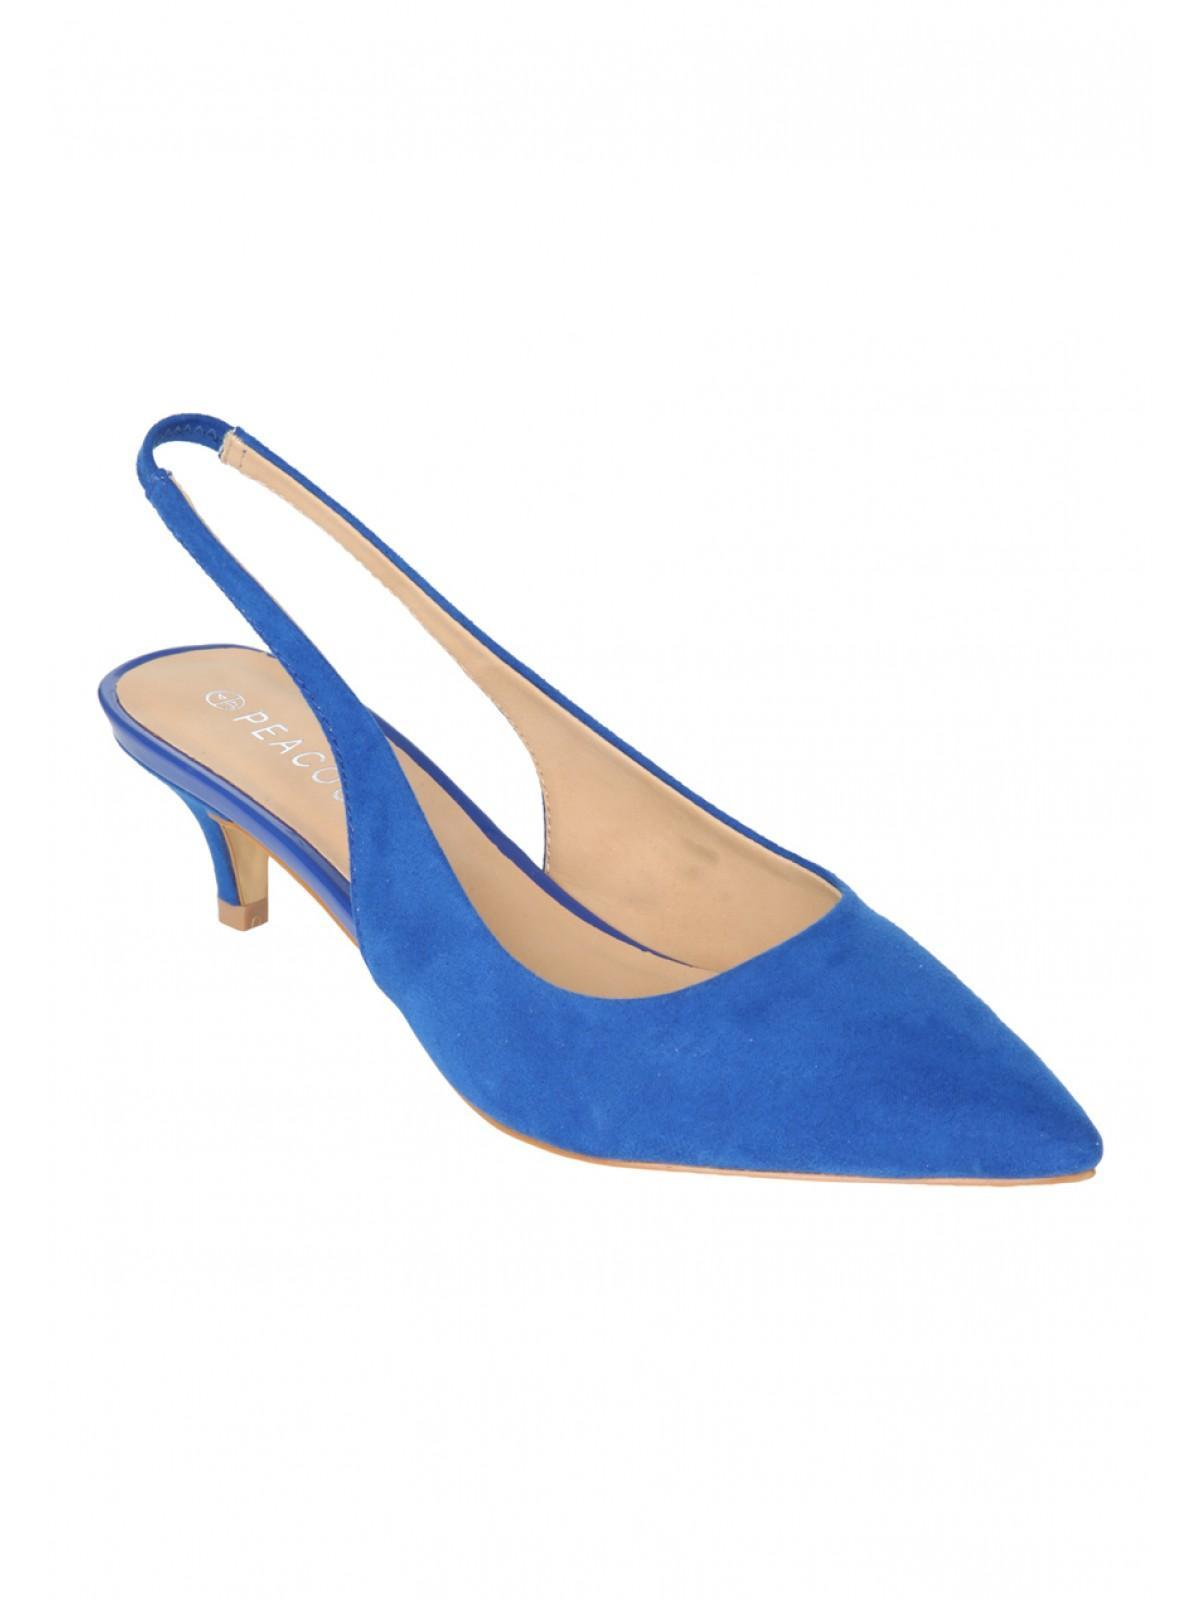 Womens Kitten Heel Slingback Shoe | Peacocks